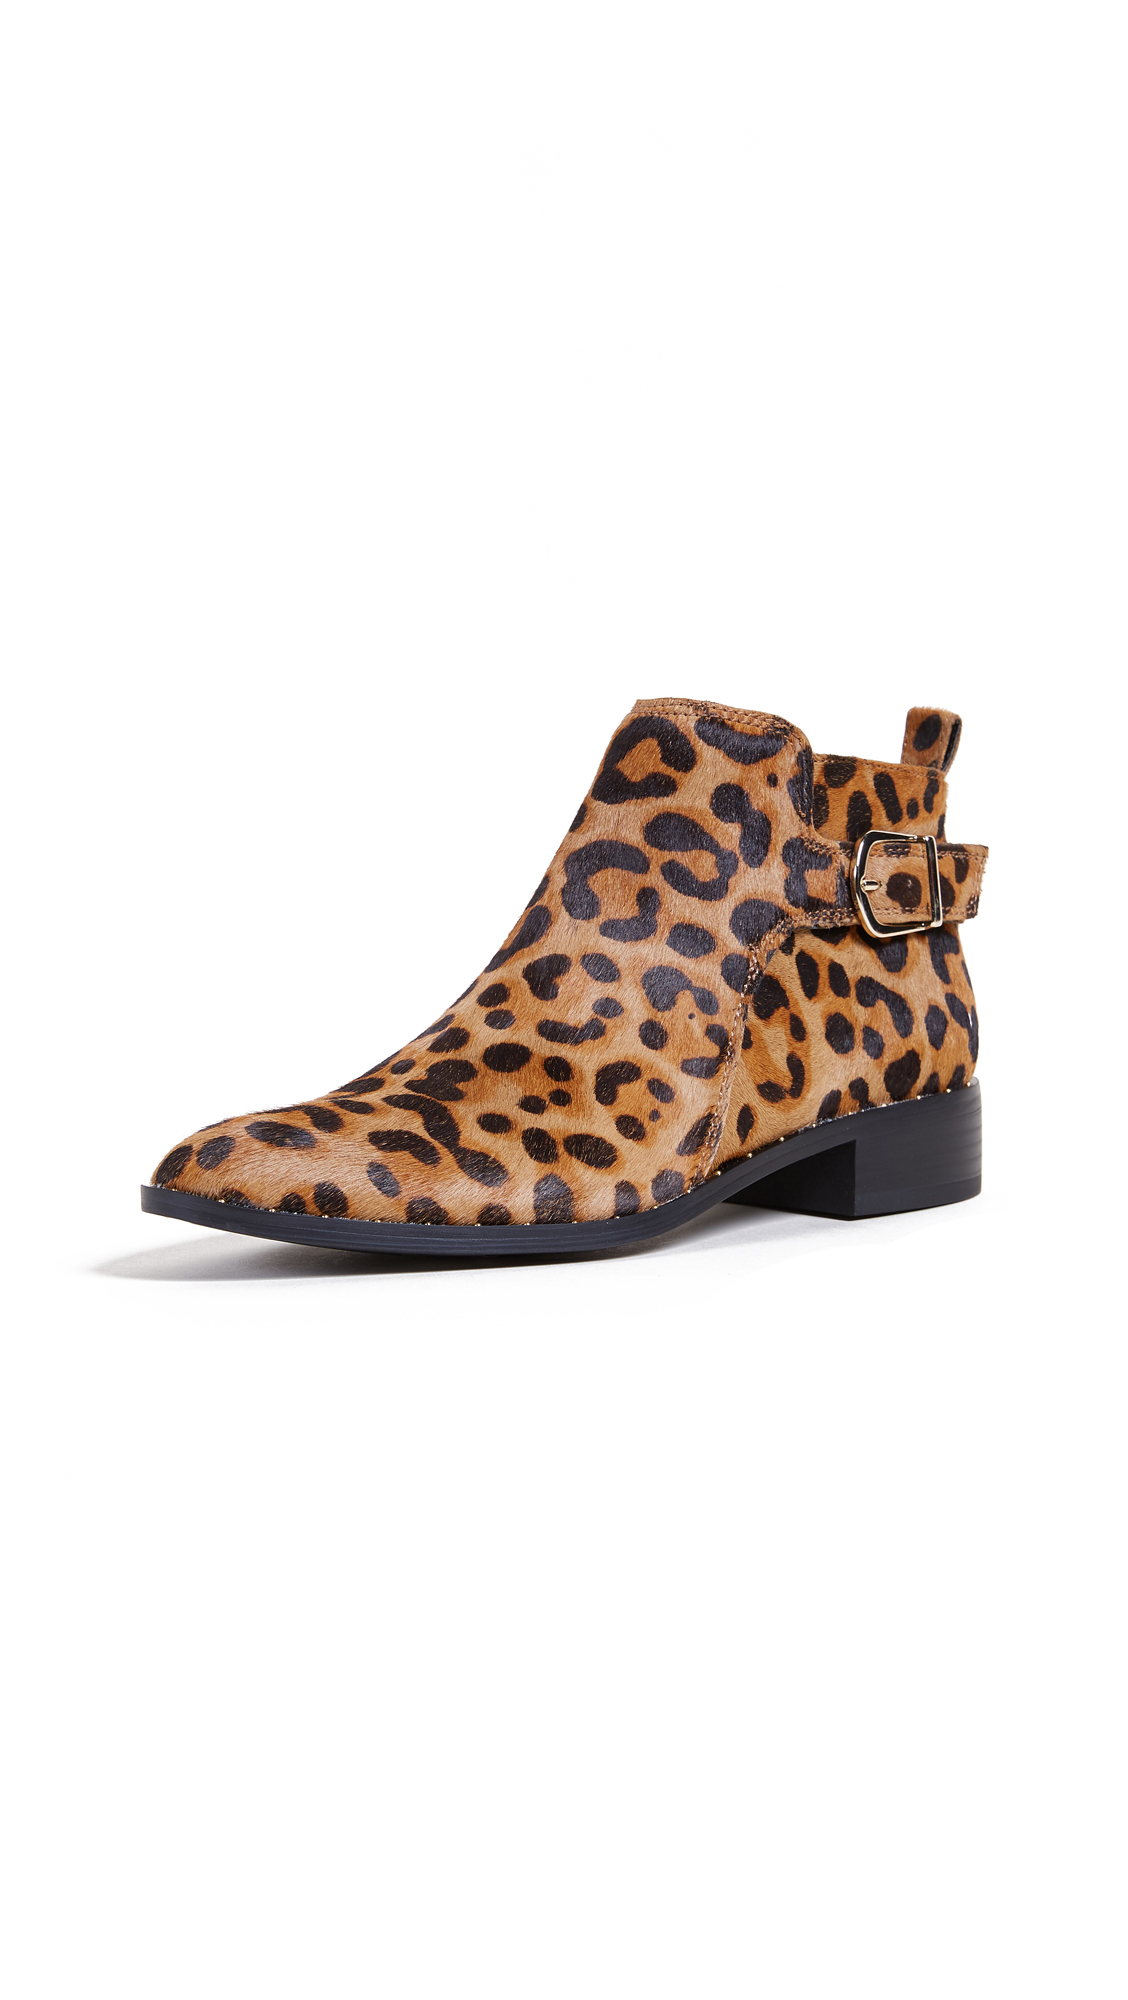 Steven Clio Ankle Booties - Leopard